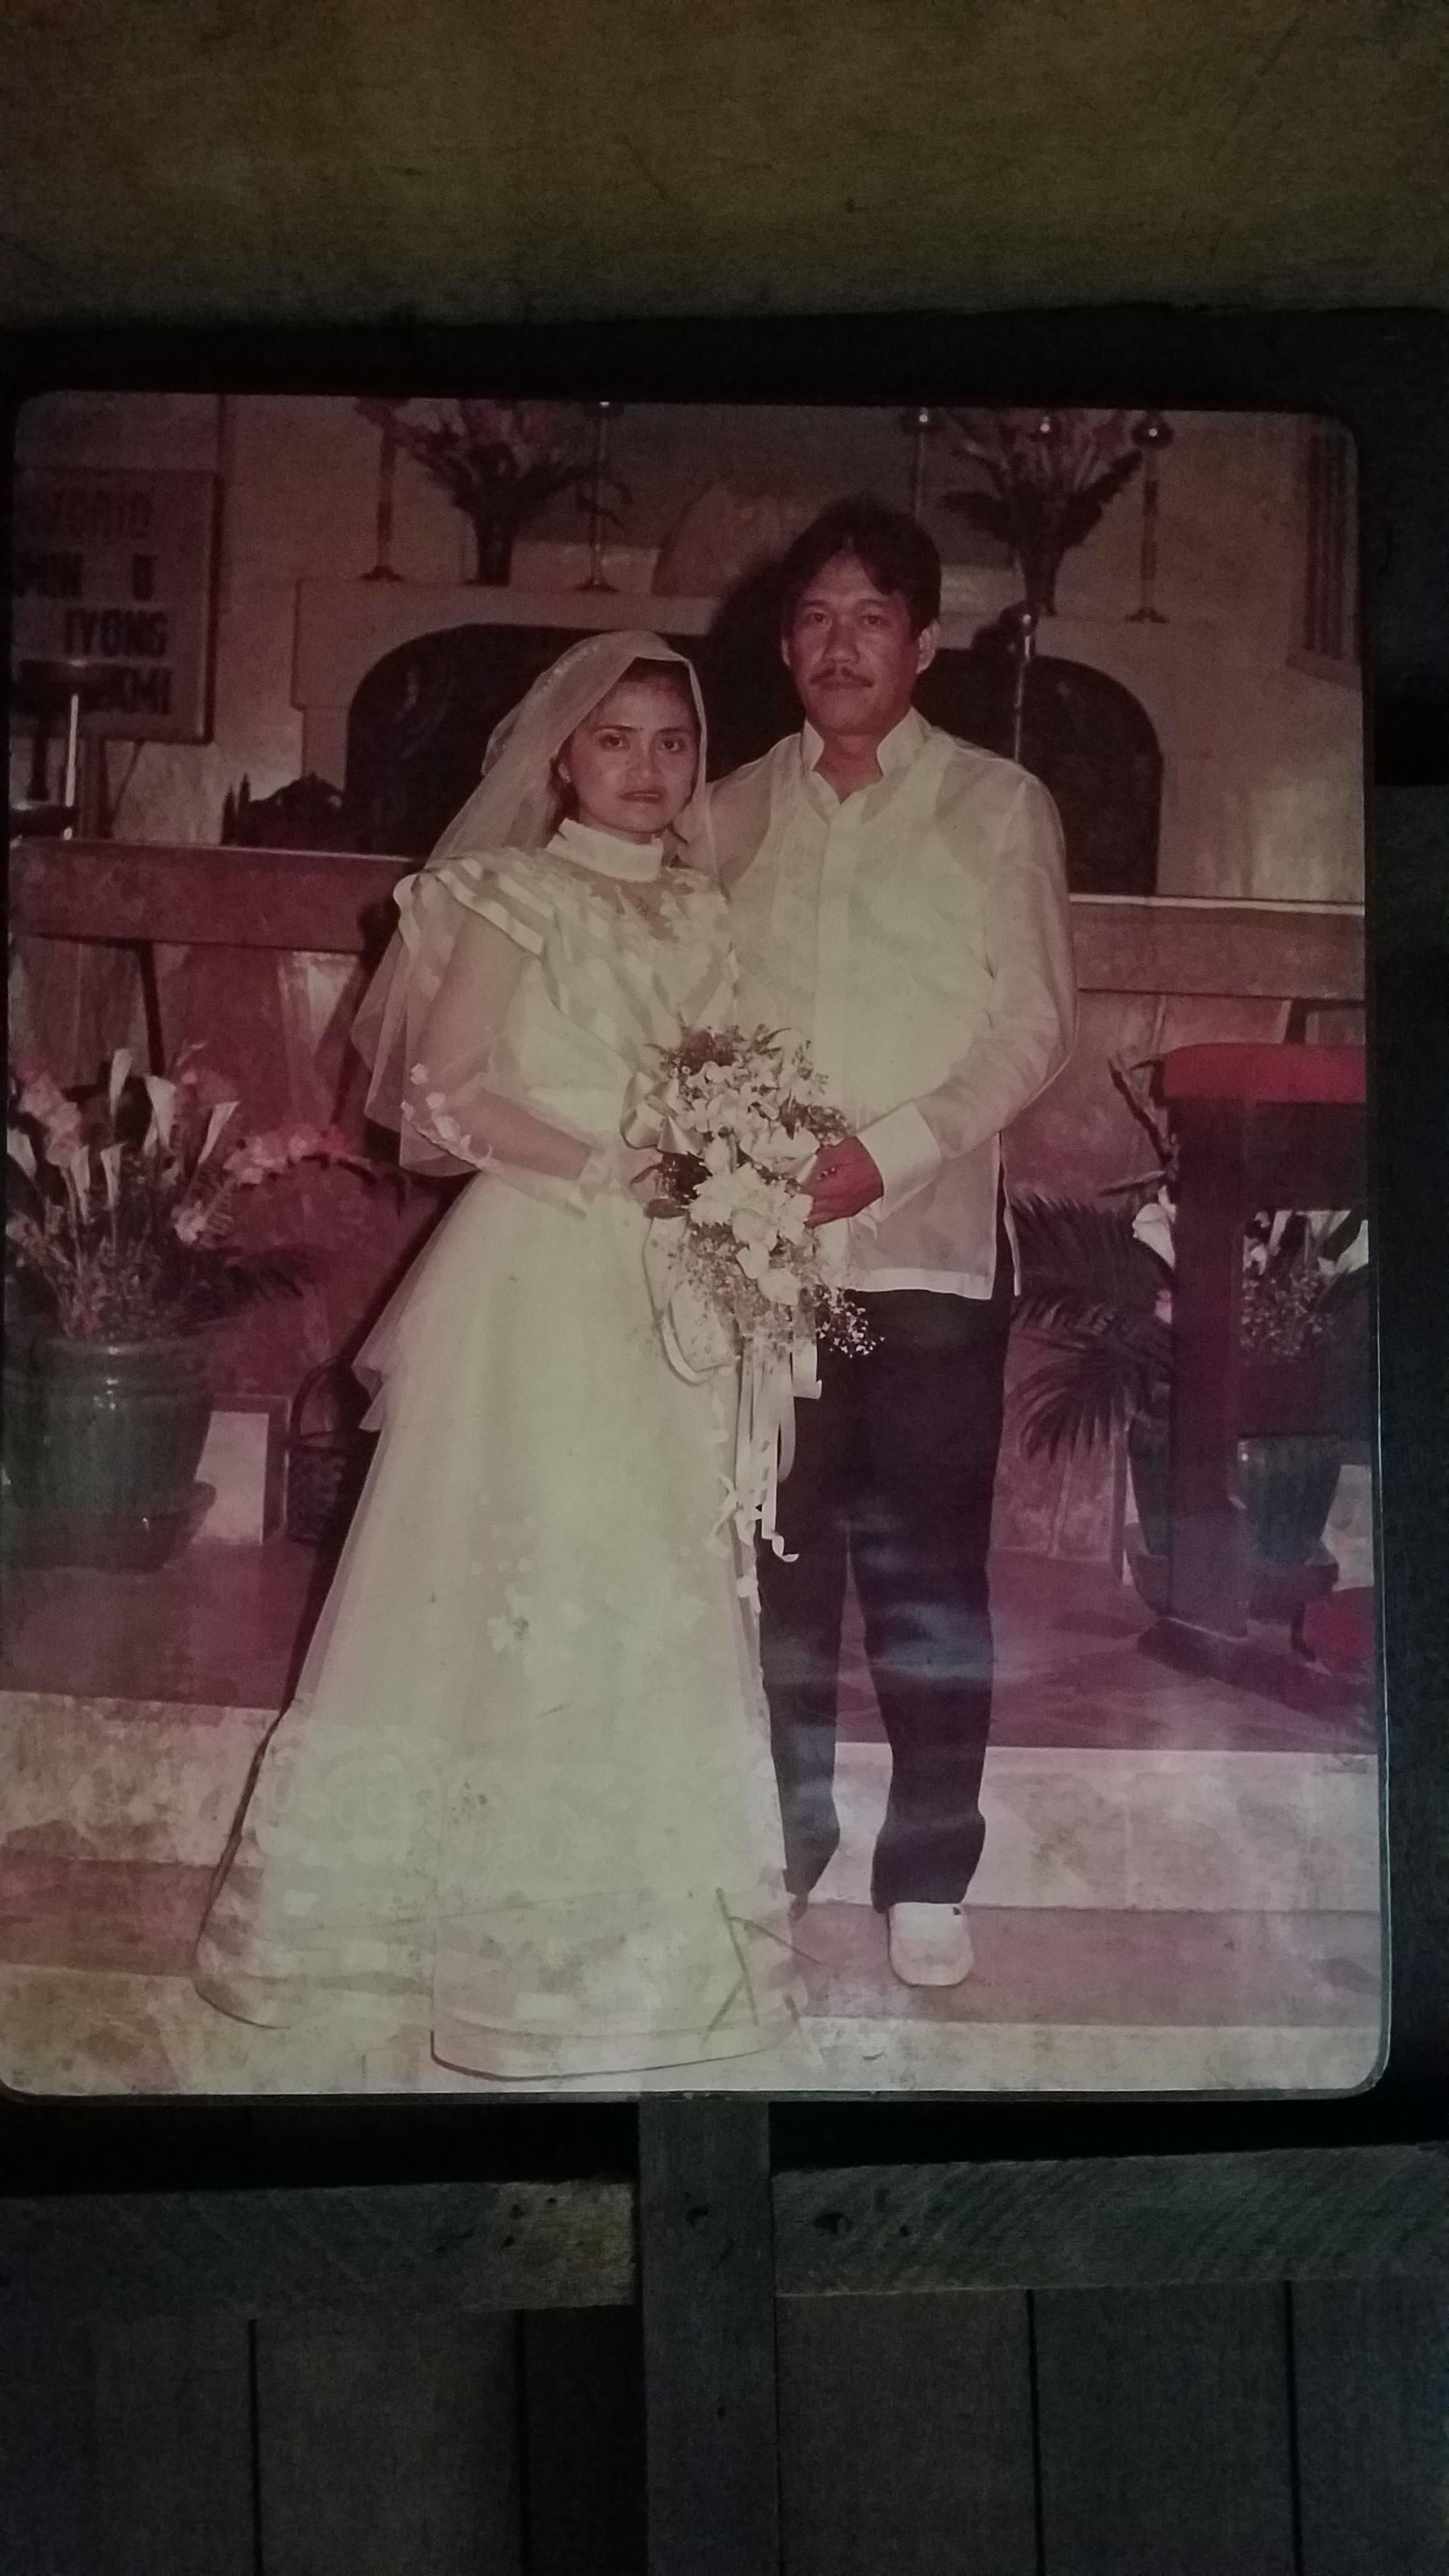 Filipino wedding dress  My parents on their wedding day in traditional Filipino attire